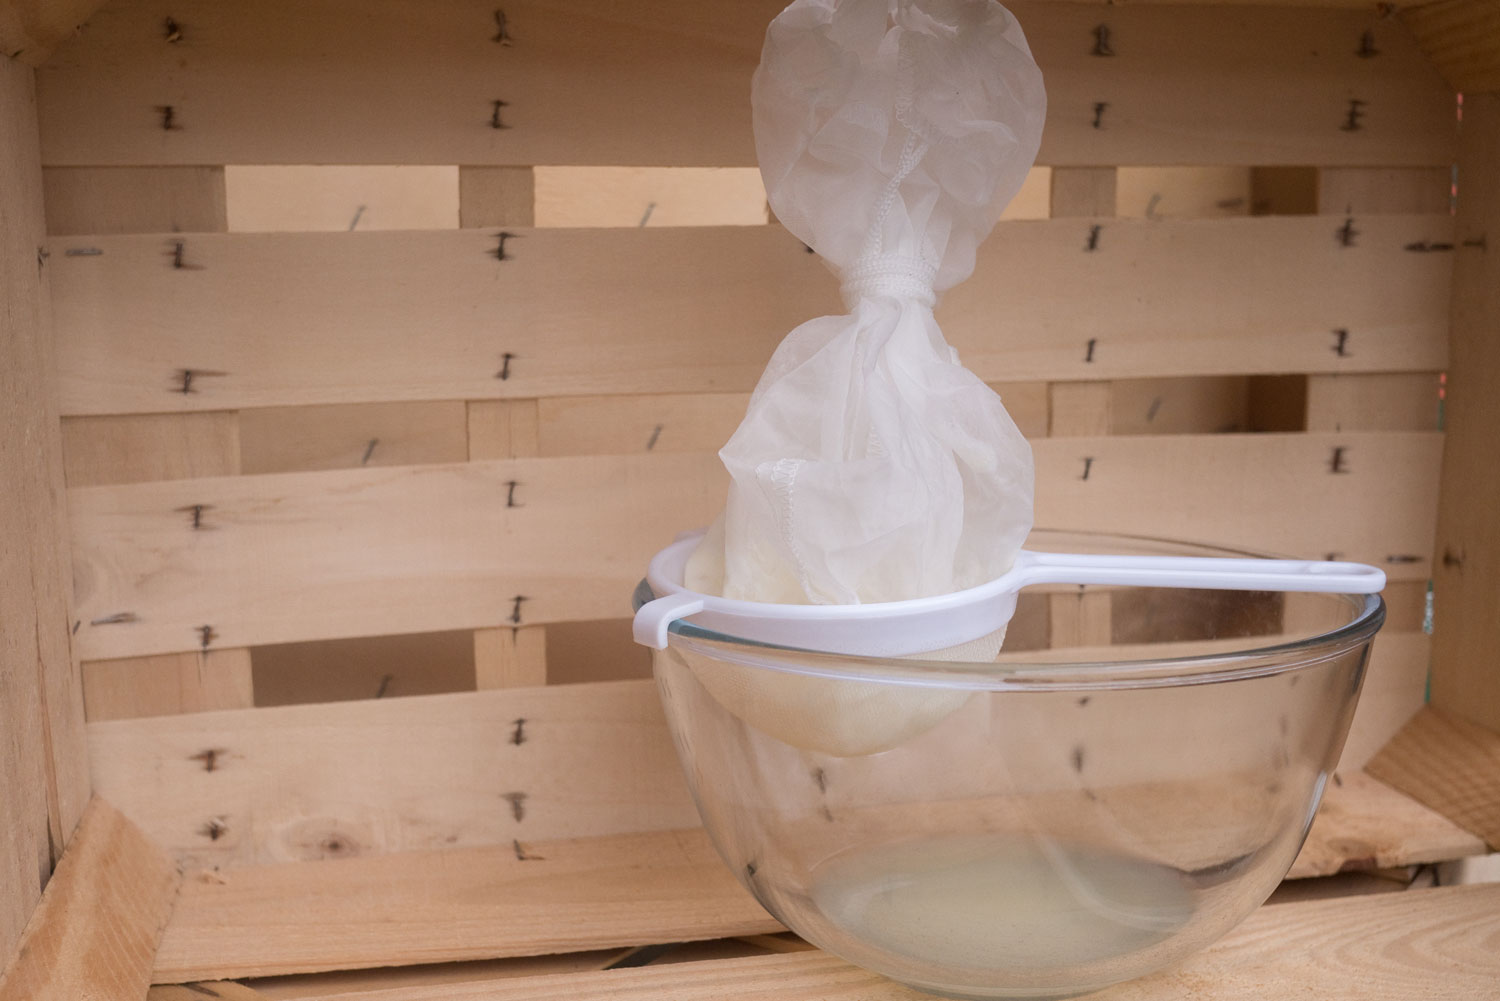 4. Pour the ready-made milk kefir into a cheesecloth lined sieve hanging over a bowl. Tie it up and place it in the fridge overnight. You will be left with whey, the liquid at the bottom of the bowl.